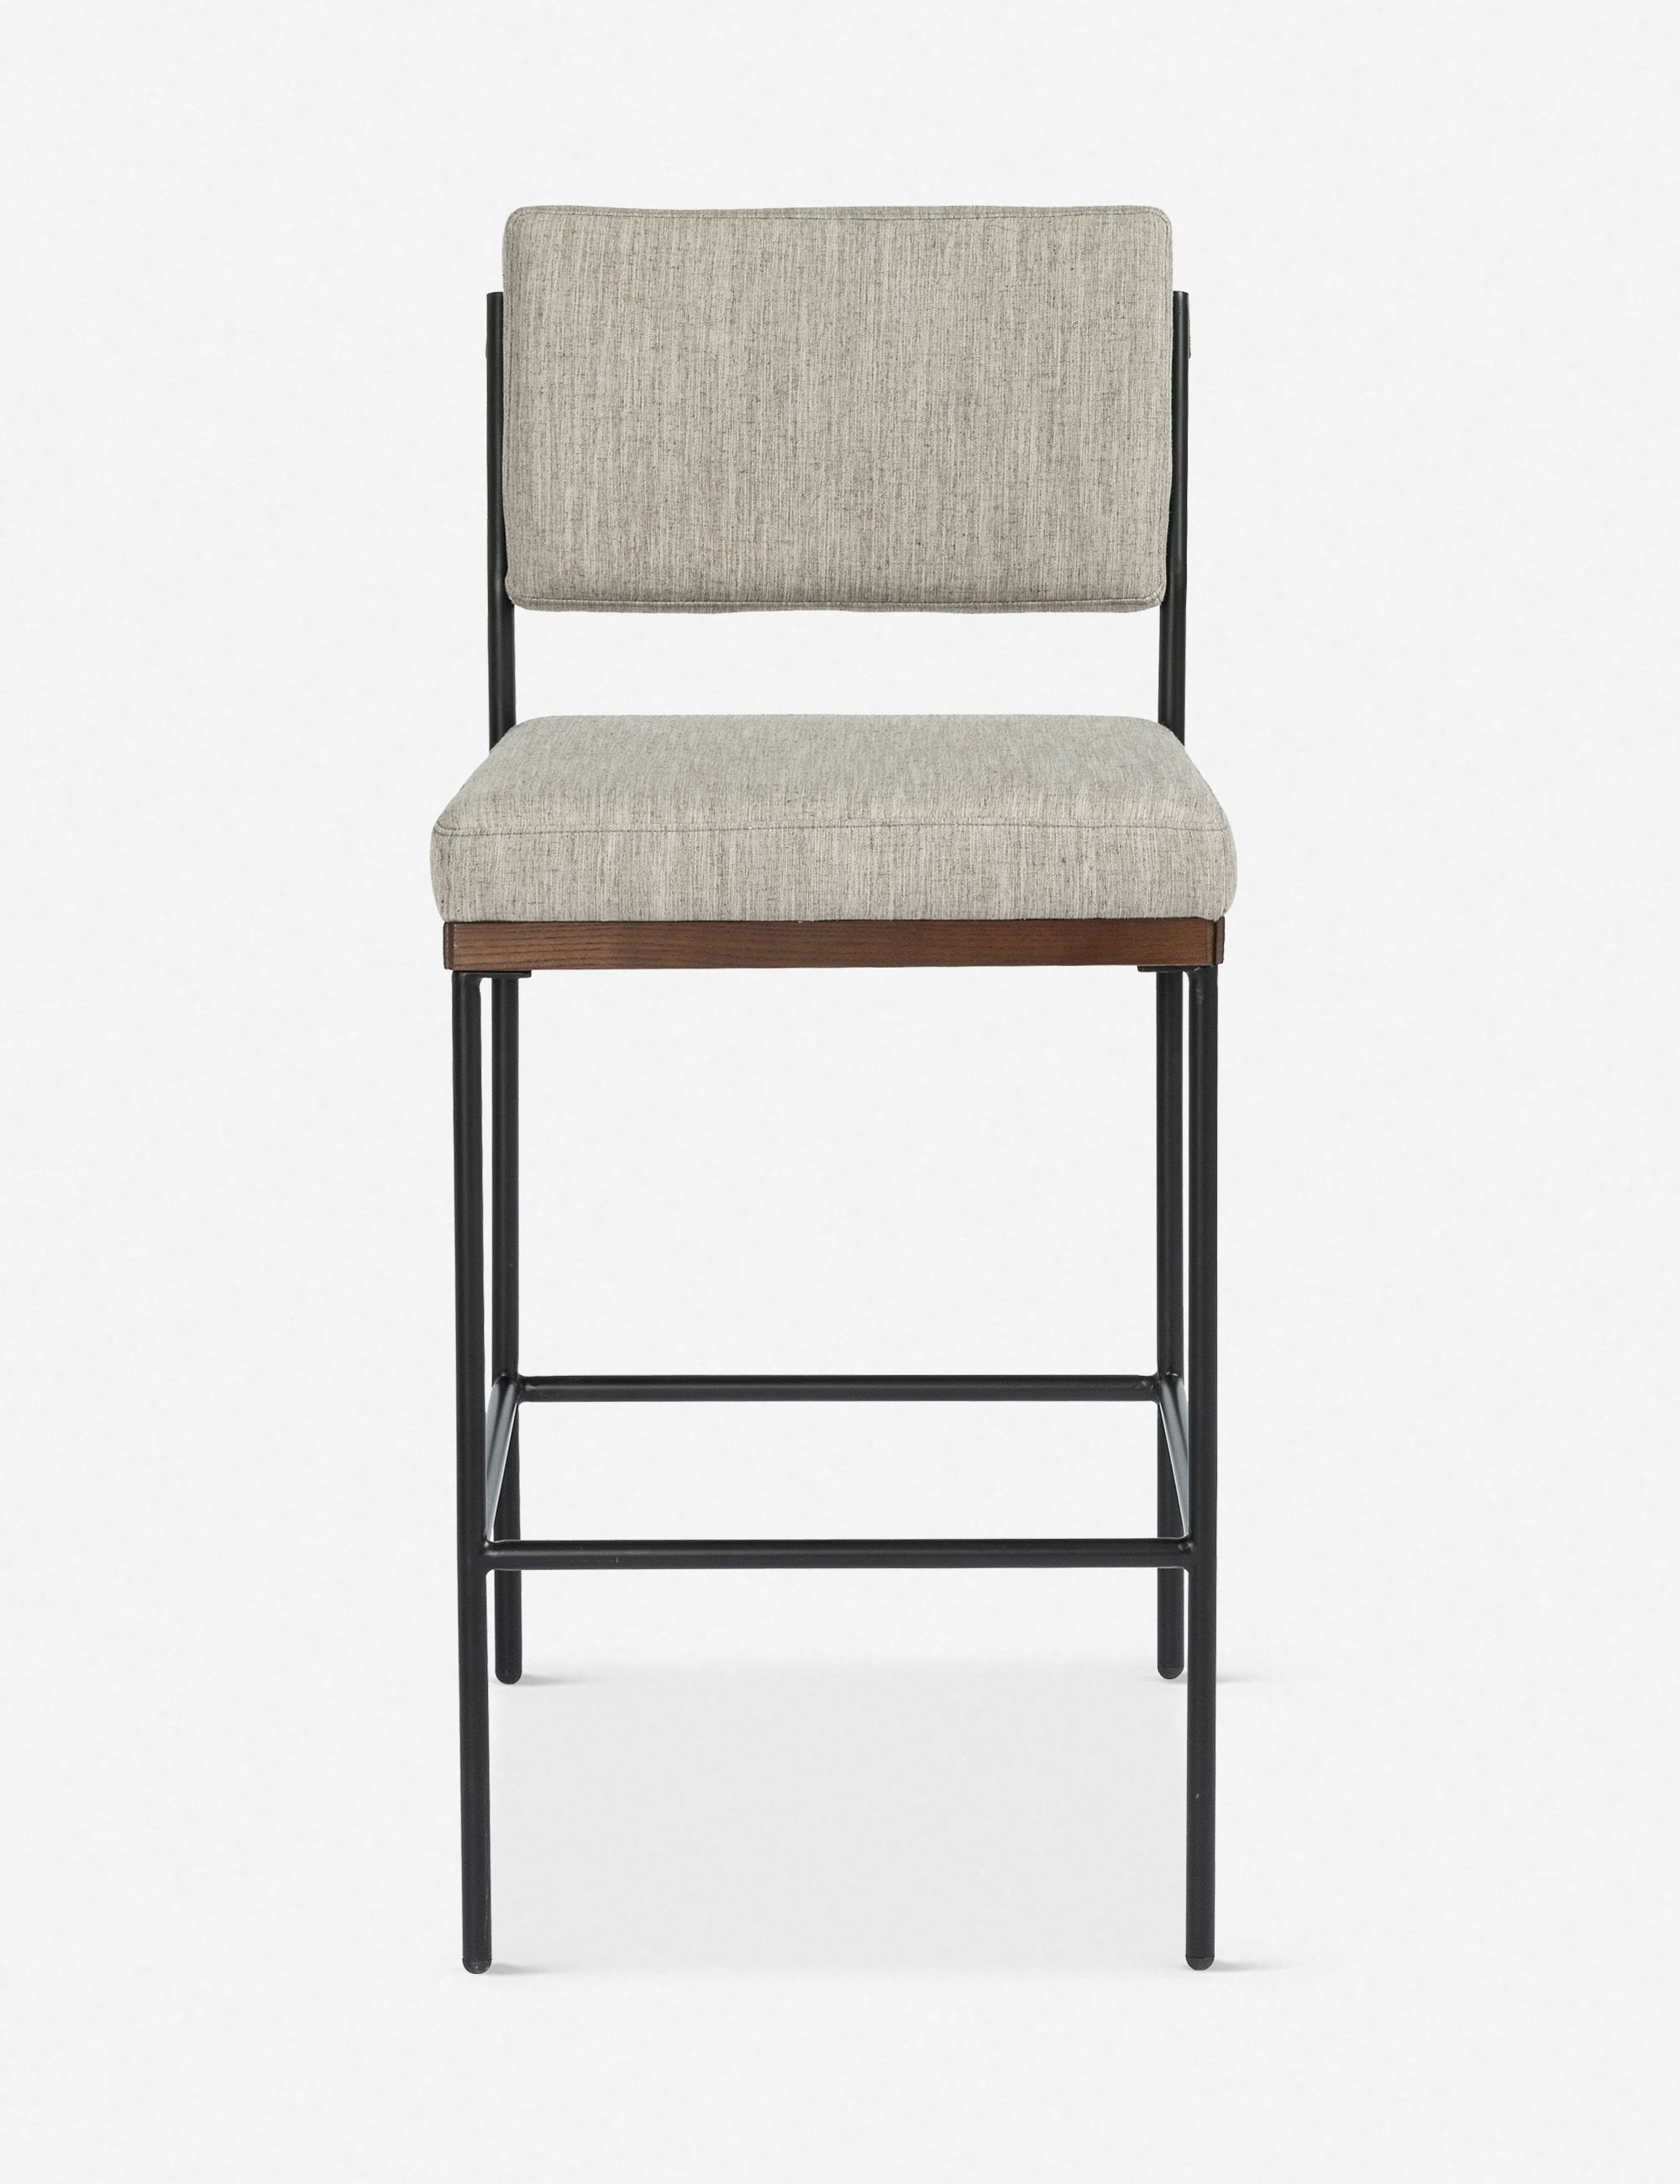 Mixed Materials Give This Bar Height Stool A Distinctly Modern Look The Armless Bar Chair Features Black Iron Legs A Flannel Colored Fabri